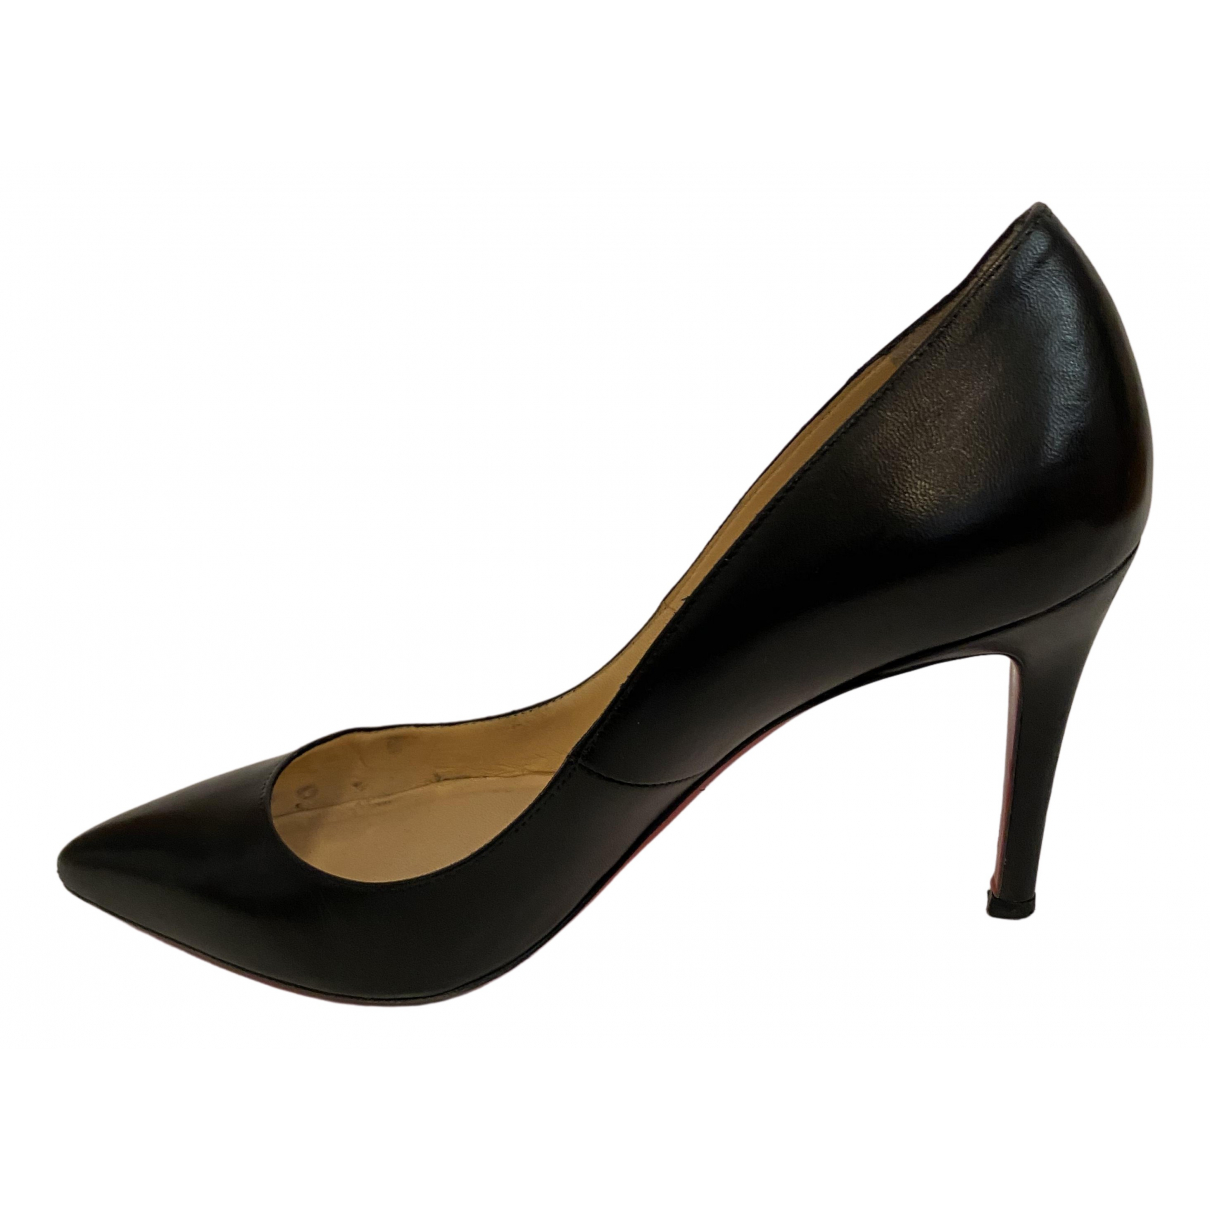 Christian Louboutin Pigalle Black Leather Heels for Women 38 EU